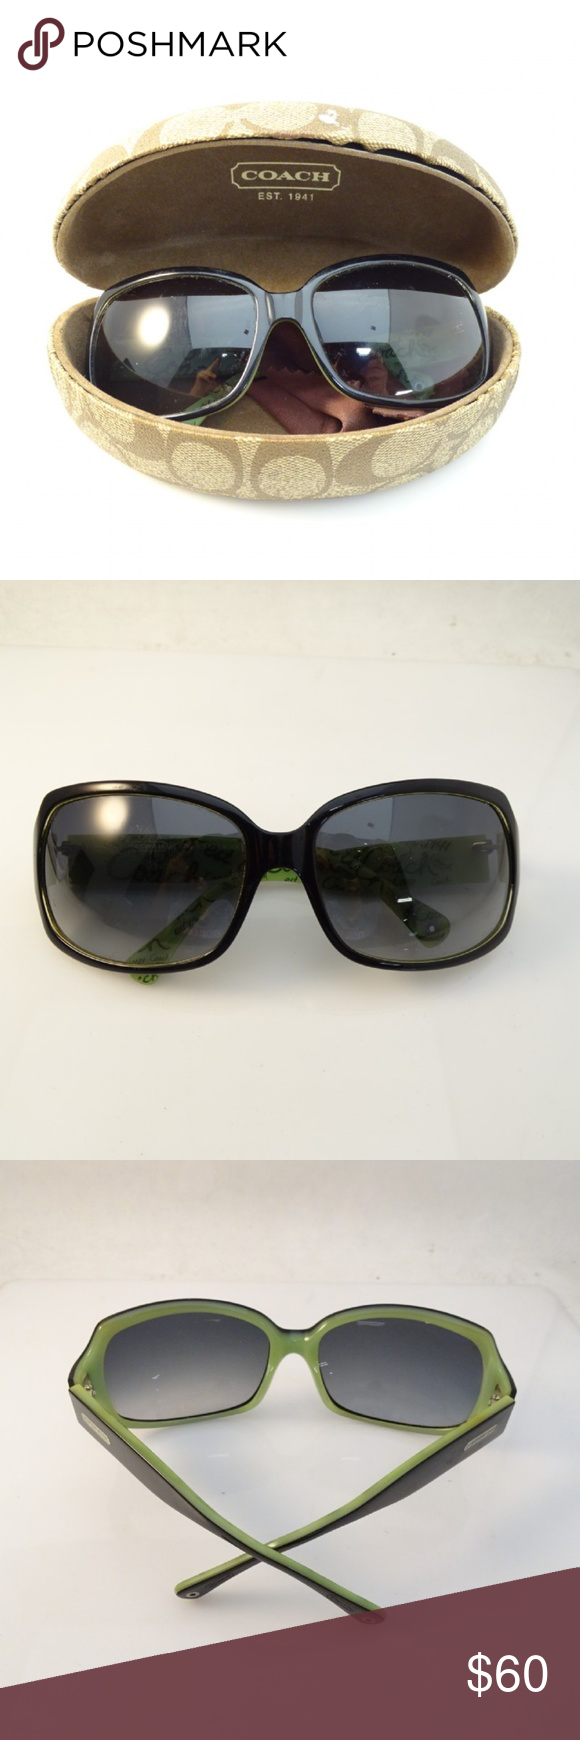 4df23cdfb8a8 Coach Ginger sunglasses with case and cloth Coach Ginger sunglasses with  case and cloth black/